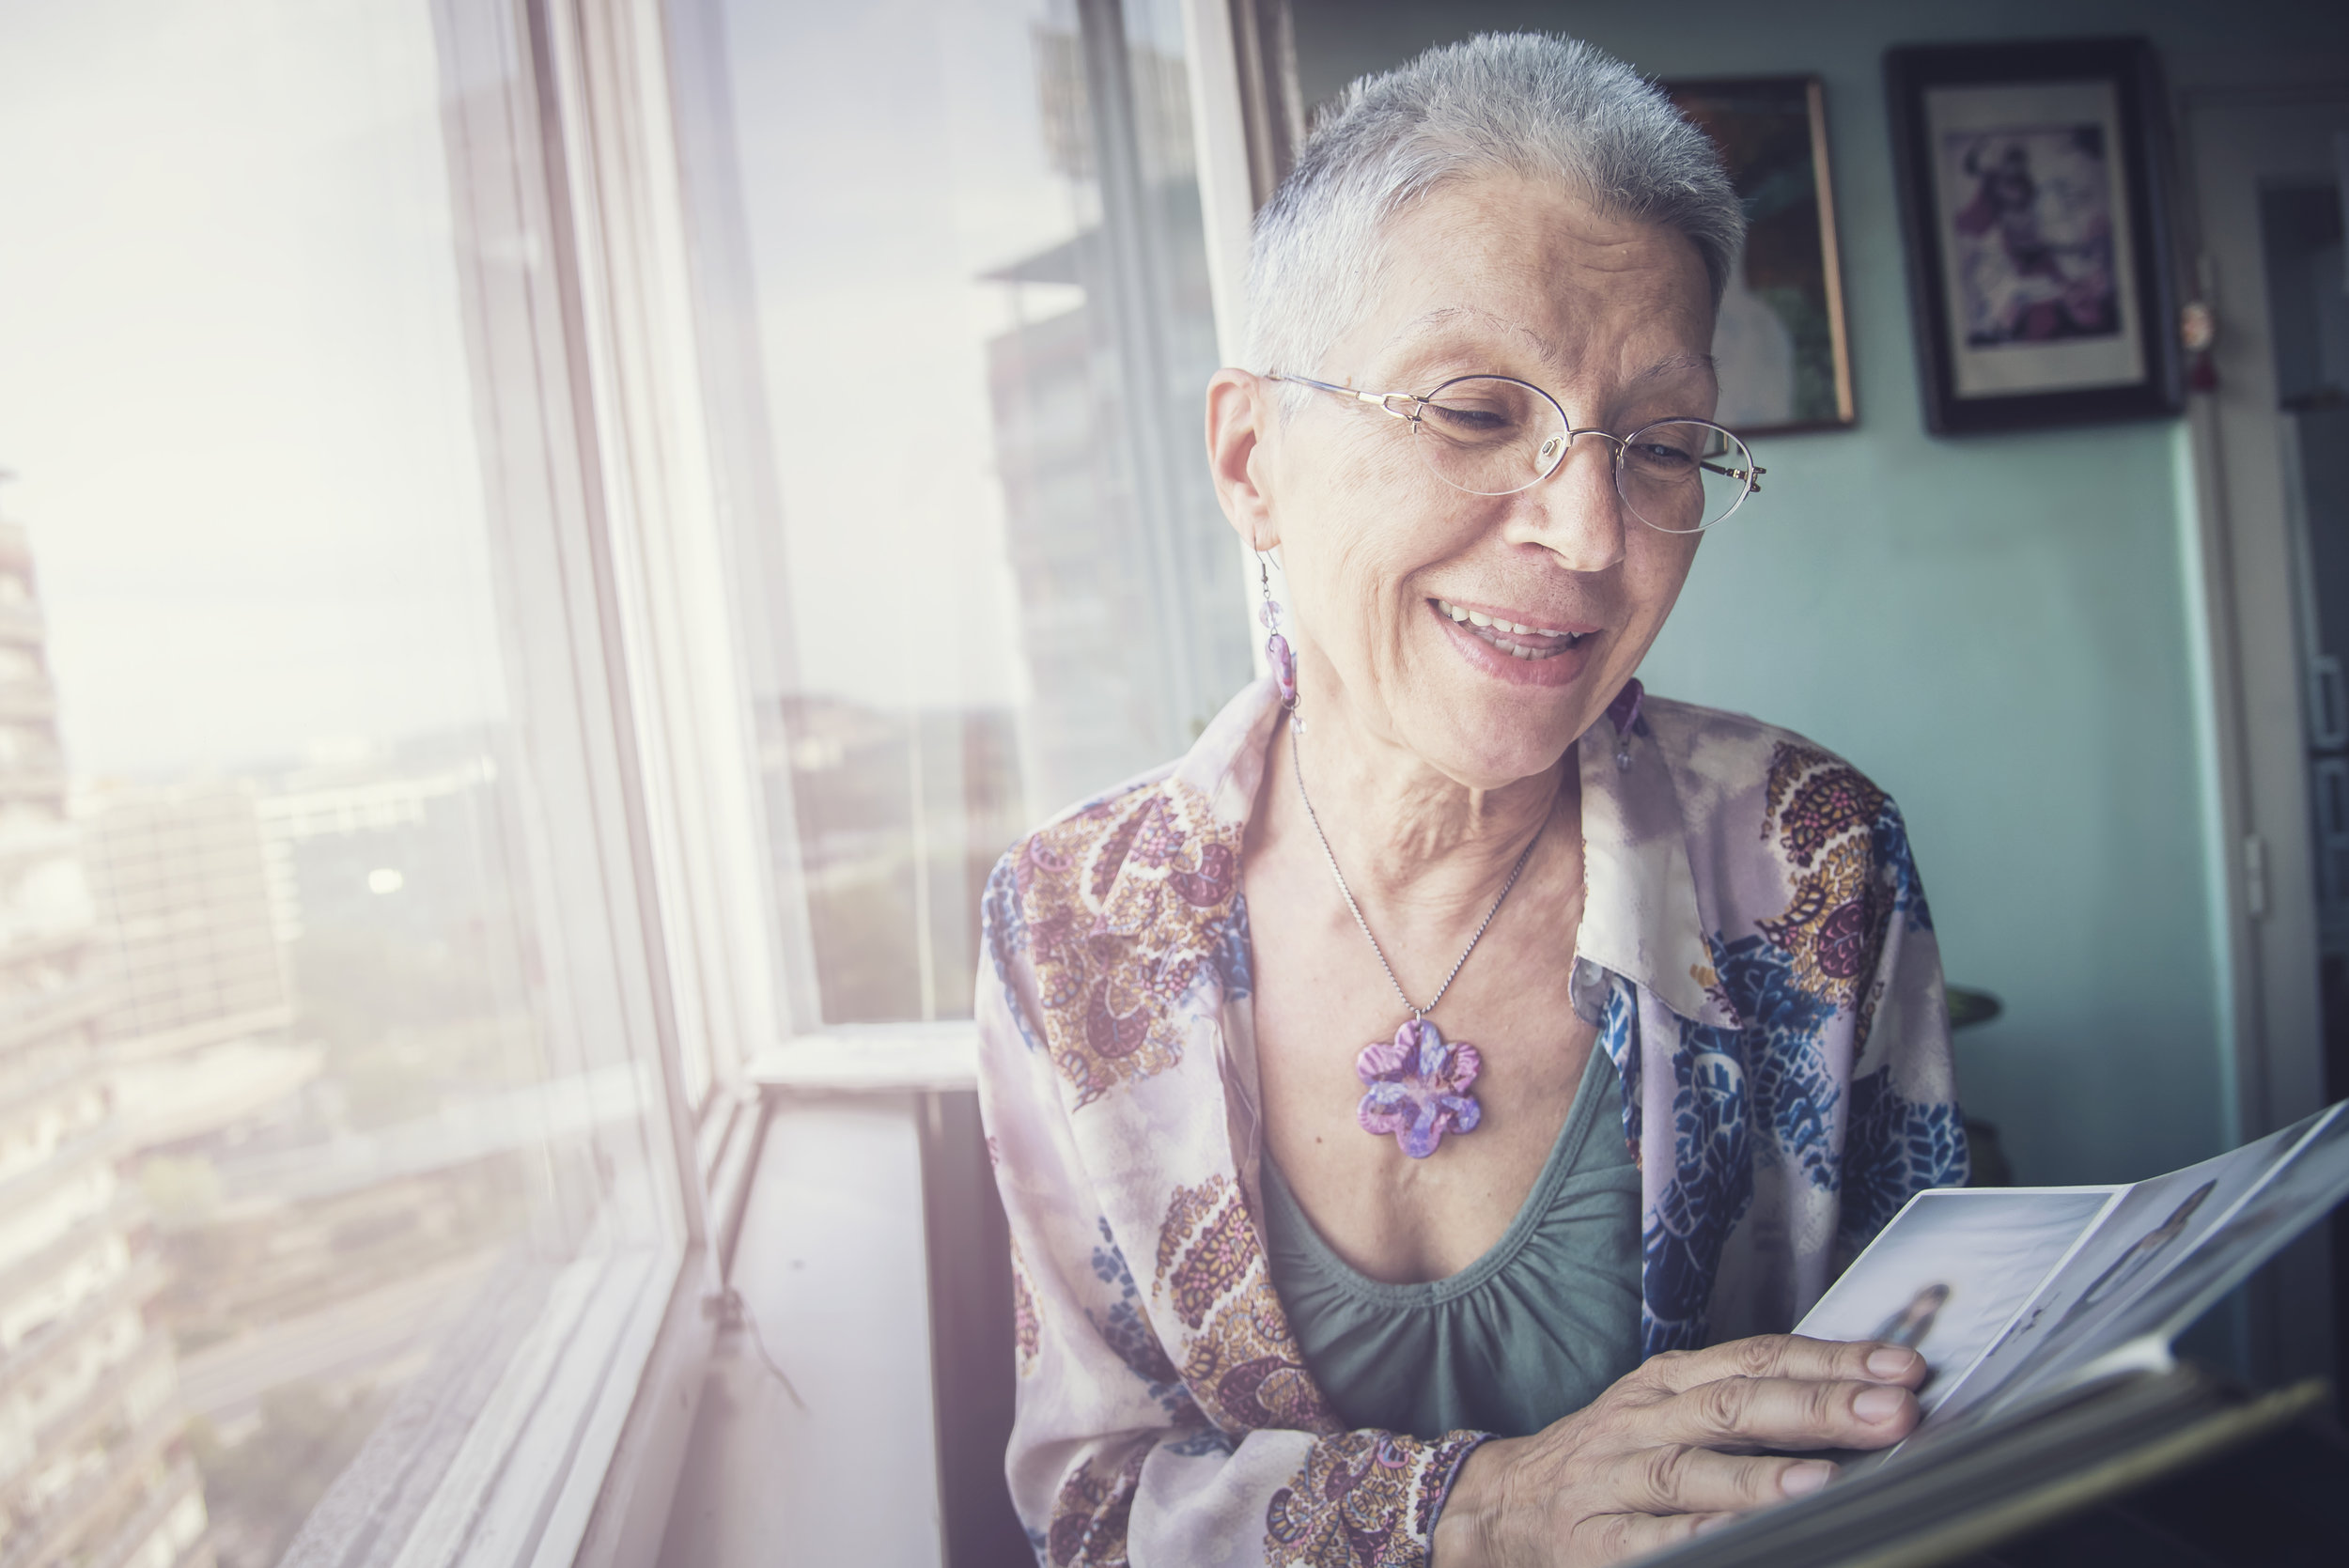 using old photos to remember your life stories can be effective memory prompt